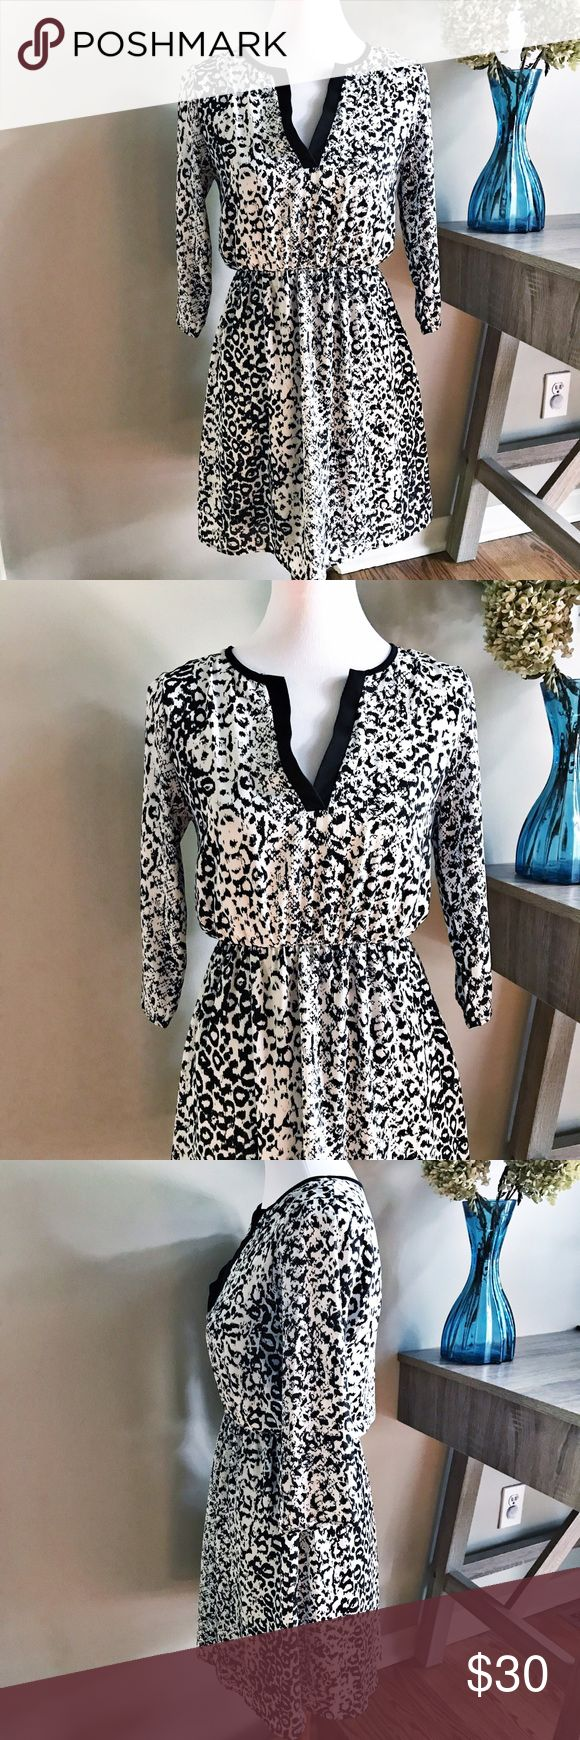 """Everly Animal Print 3/4 Sleeve V-Neck Dress Excellent Condition! Everly animal print 3/4 sleeve v-neck dress. Elastic gathered waistband. Super cute and comfortable. Tag size S. Approximate measurements laying flat: armpit to armpit 15"""", waist (stretchy) 11"""", length shoulder to hem 33.5"""". 👗👛👠👙👕Bundle & Save! Dresses"""